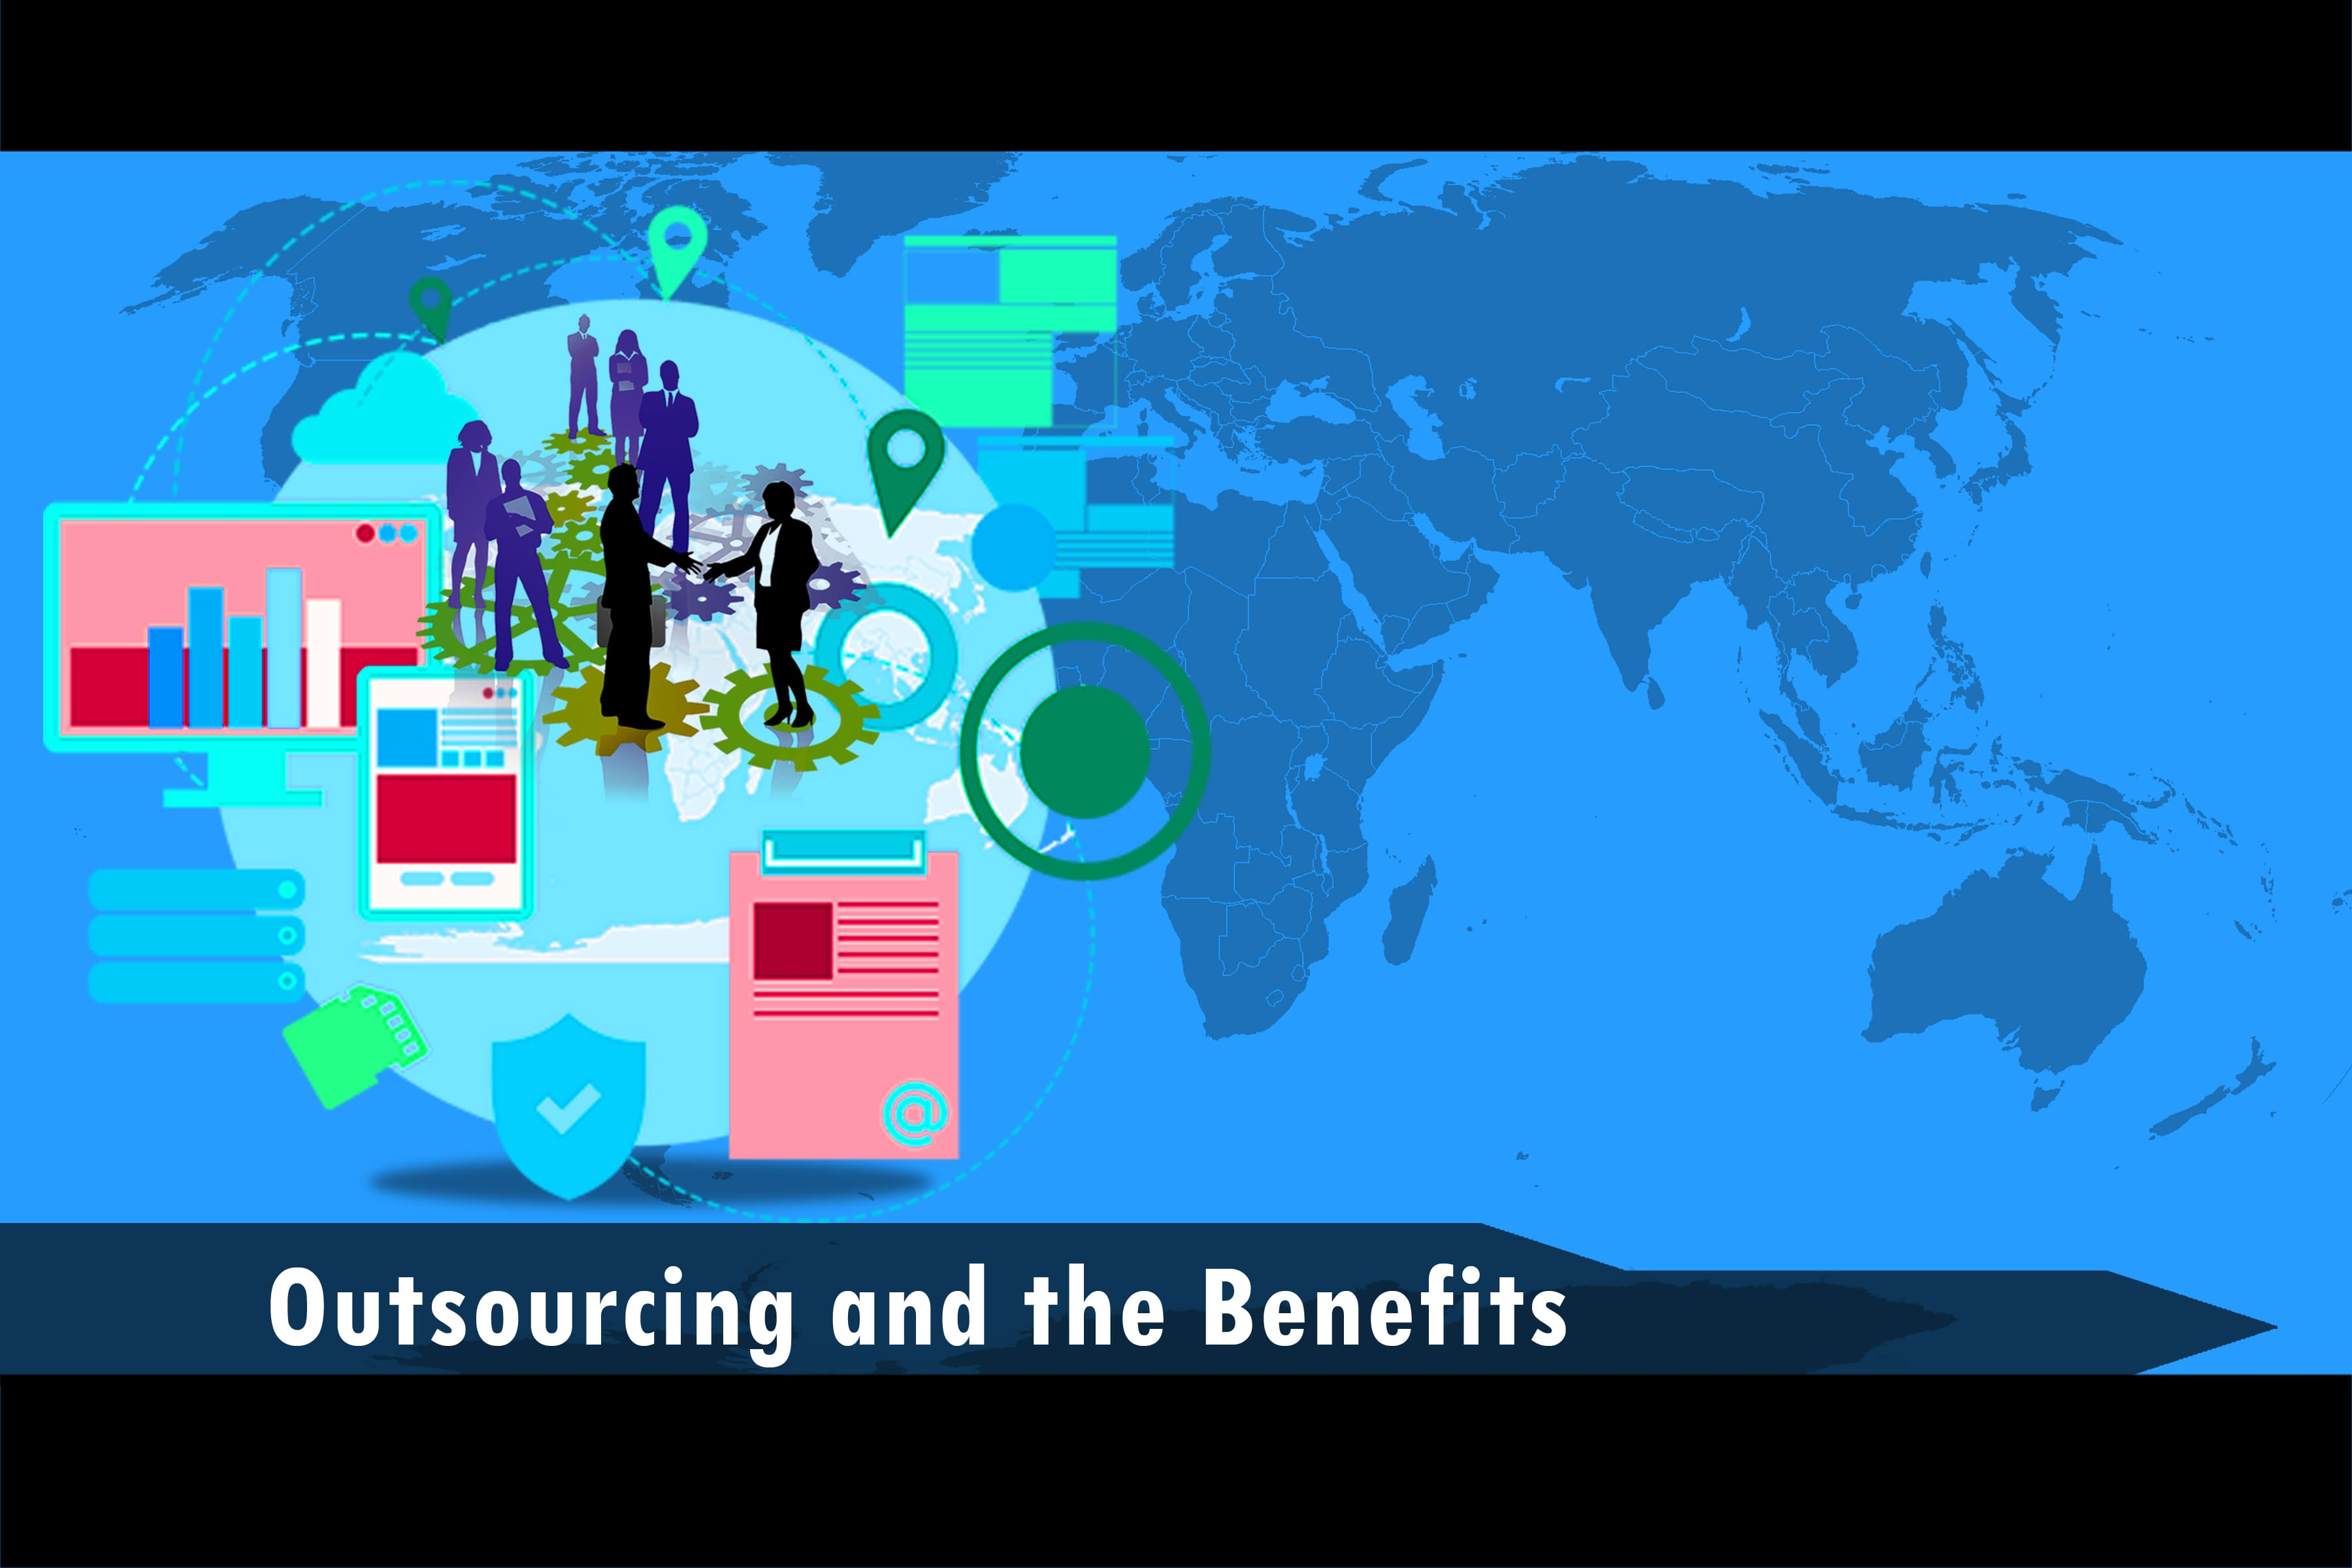 Outsourcing and the Benefits